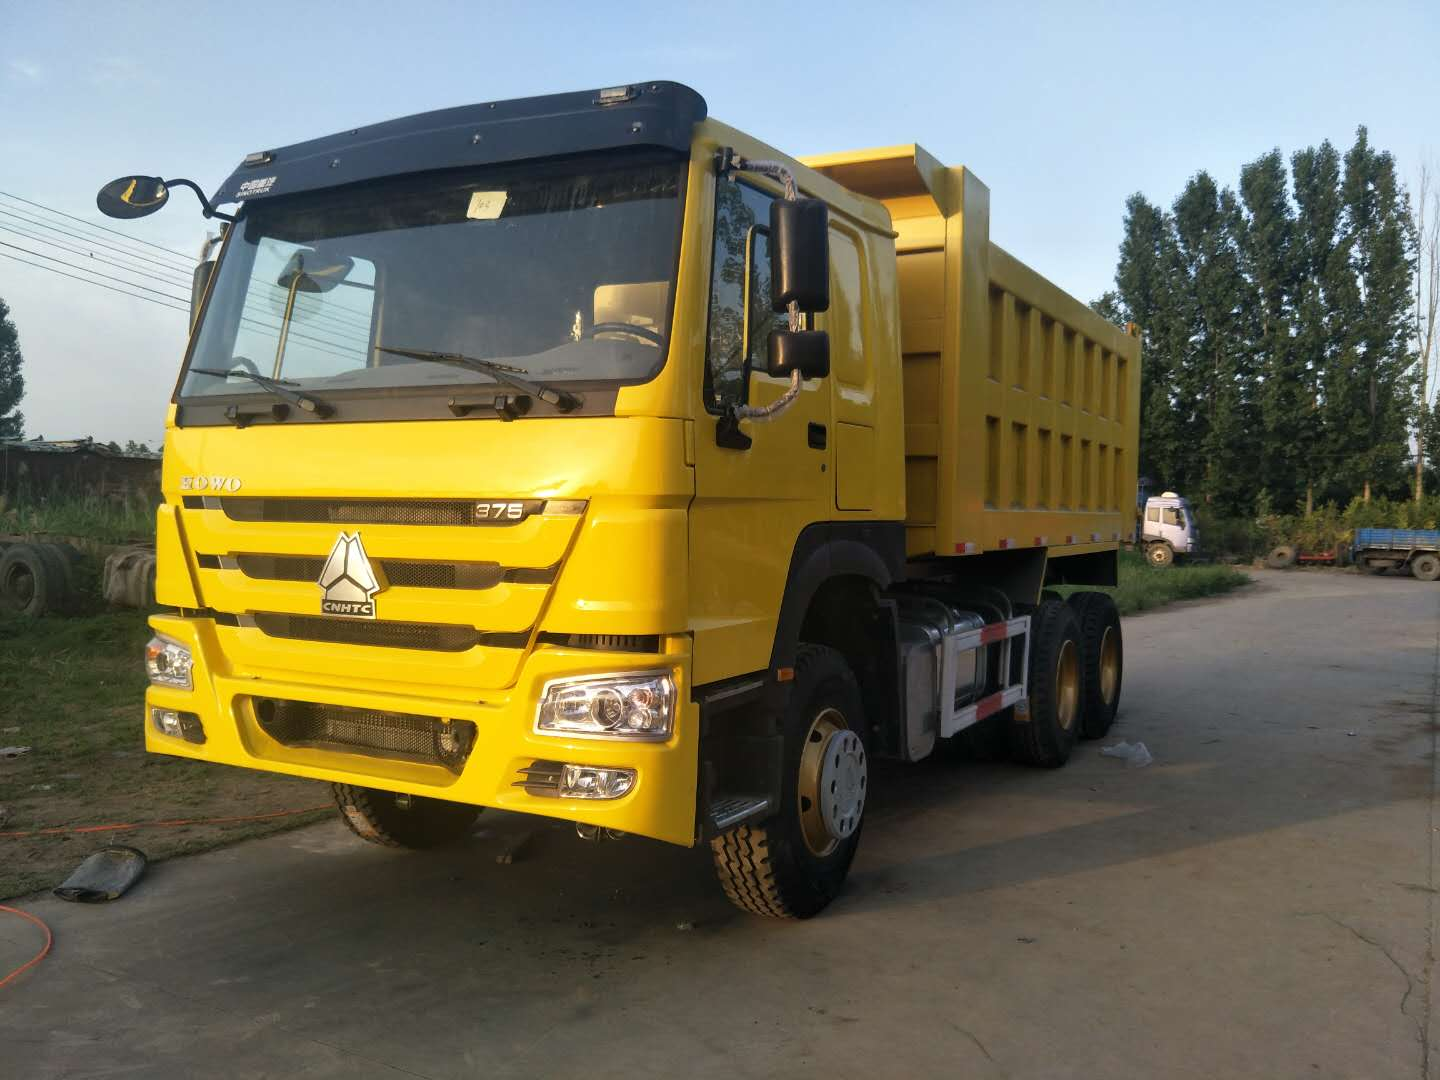 Dump truck from Zhengzhou Dongfeng Mid-South Enterprise Co., Ltd